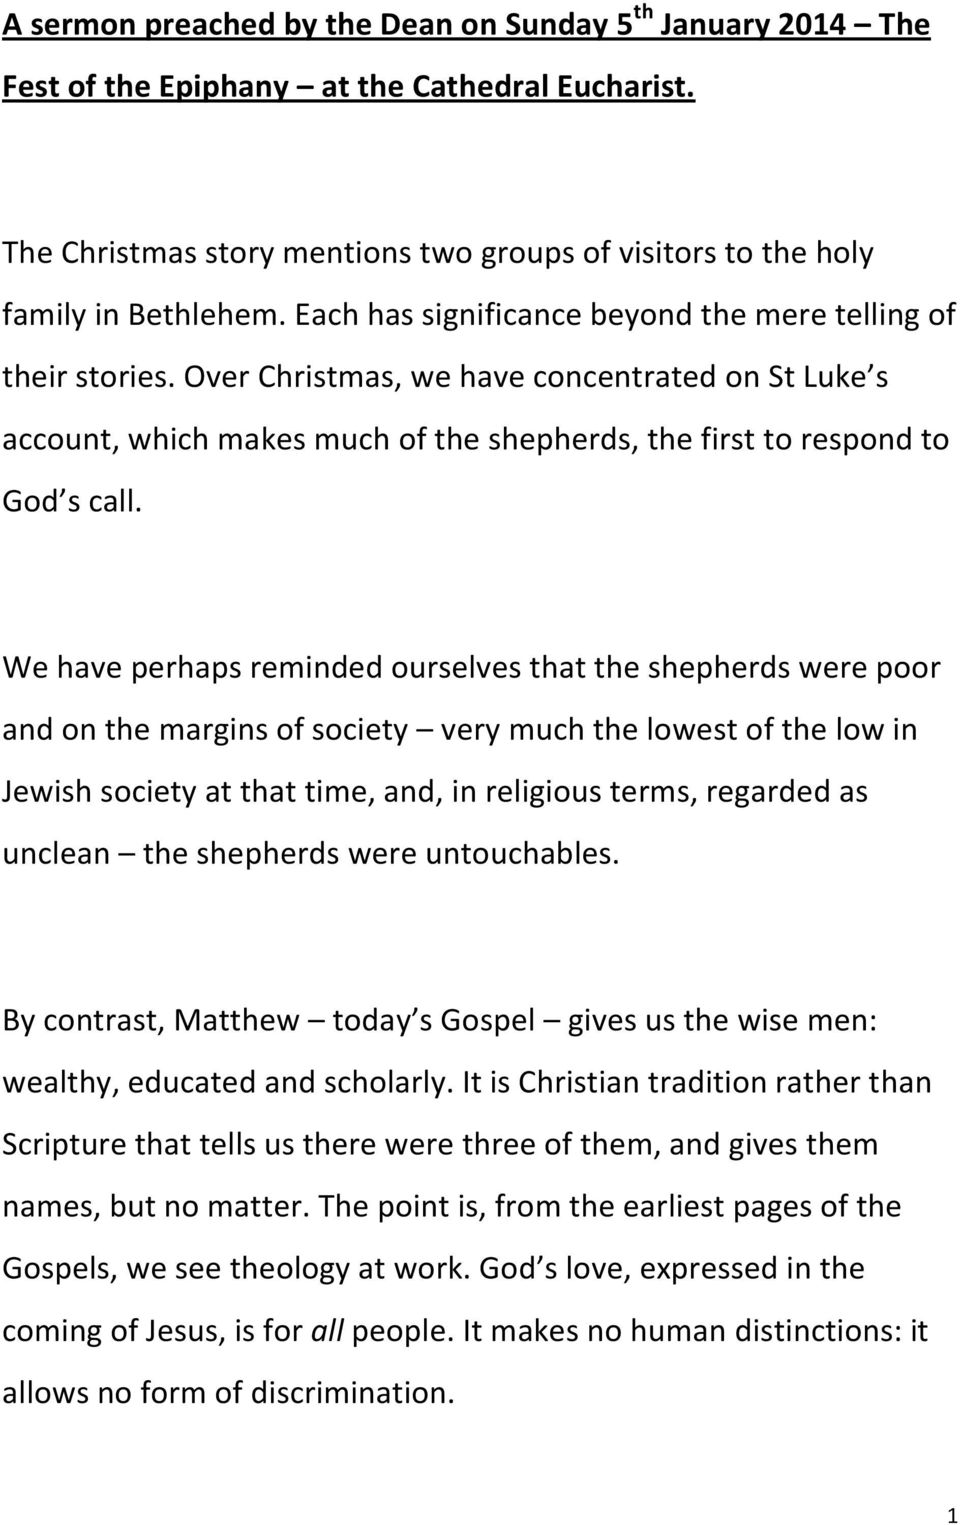 We have perhaps reminded ourselves that the shepherds were poor and on the margins of society very much the lowest of the low in Jewish society at that time, and, in religious terms, regarded as